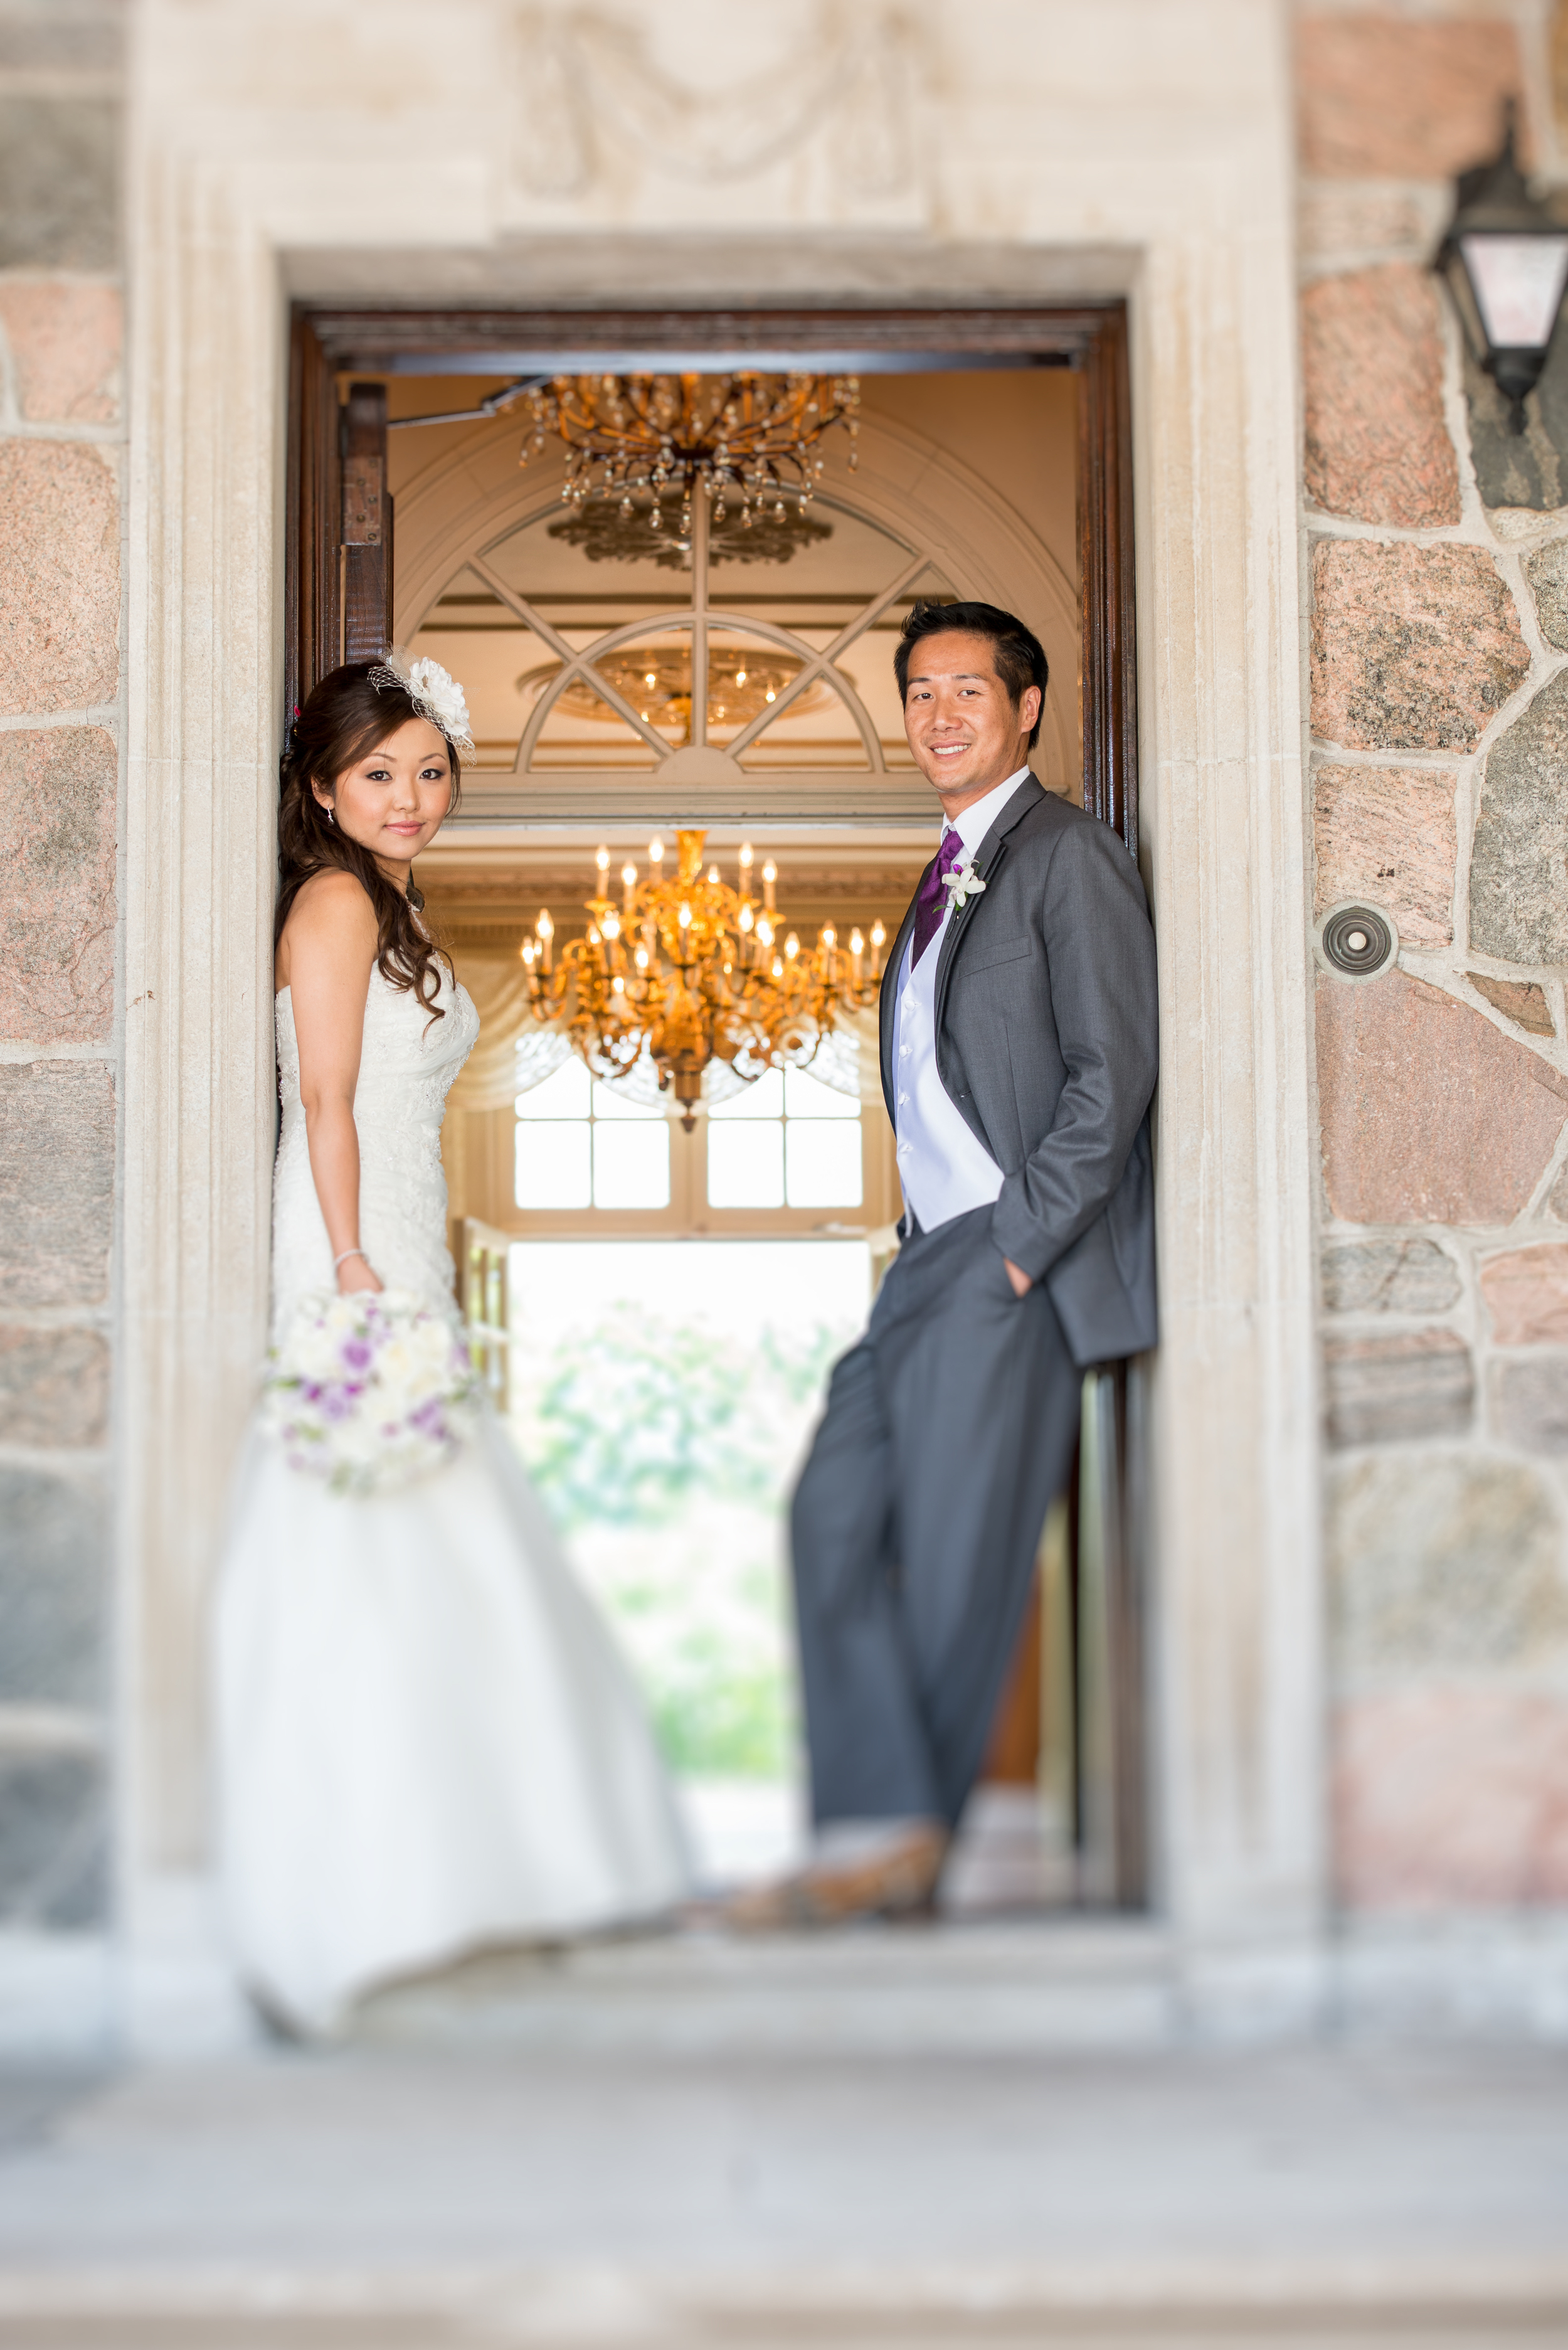 Mugshots Photography - Real Wedding-031.jpg